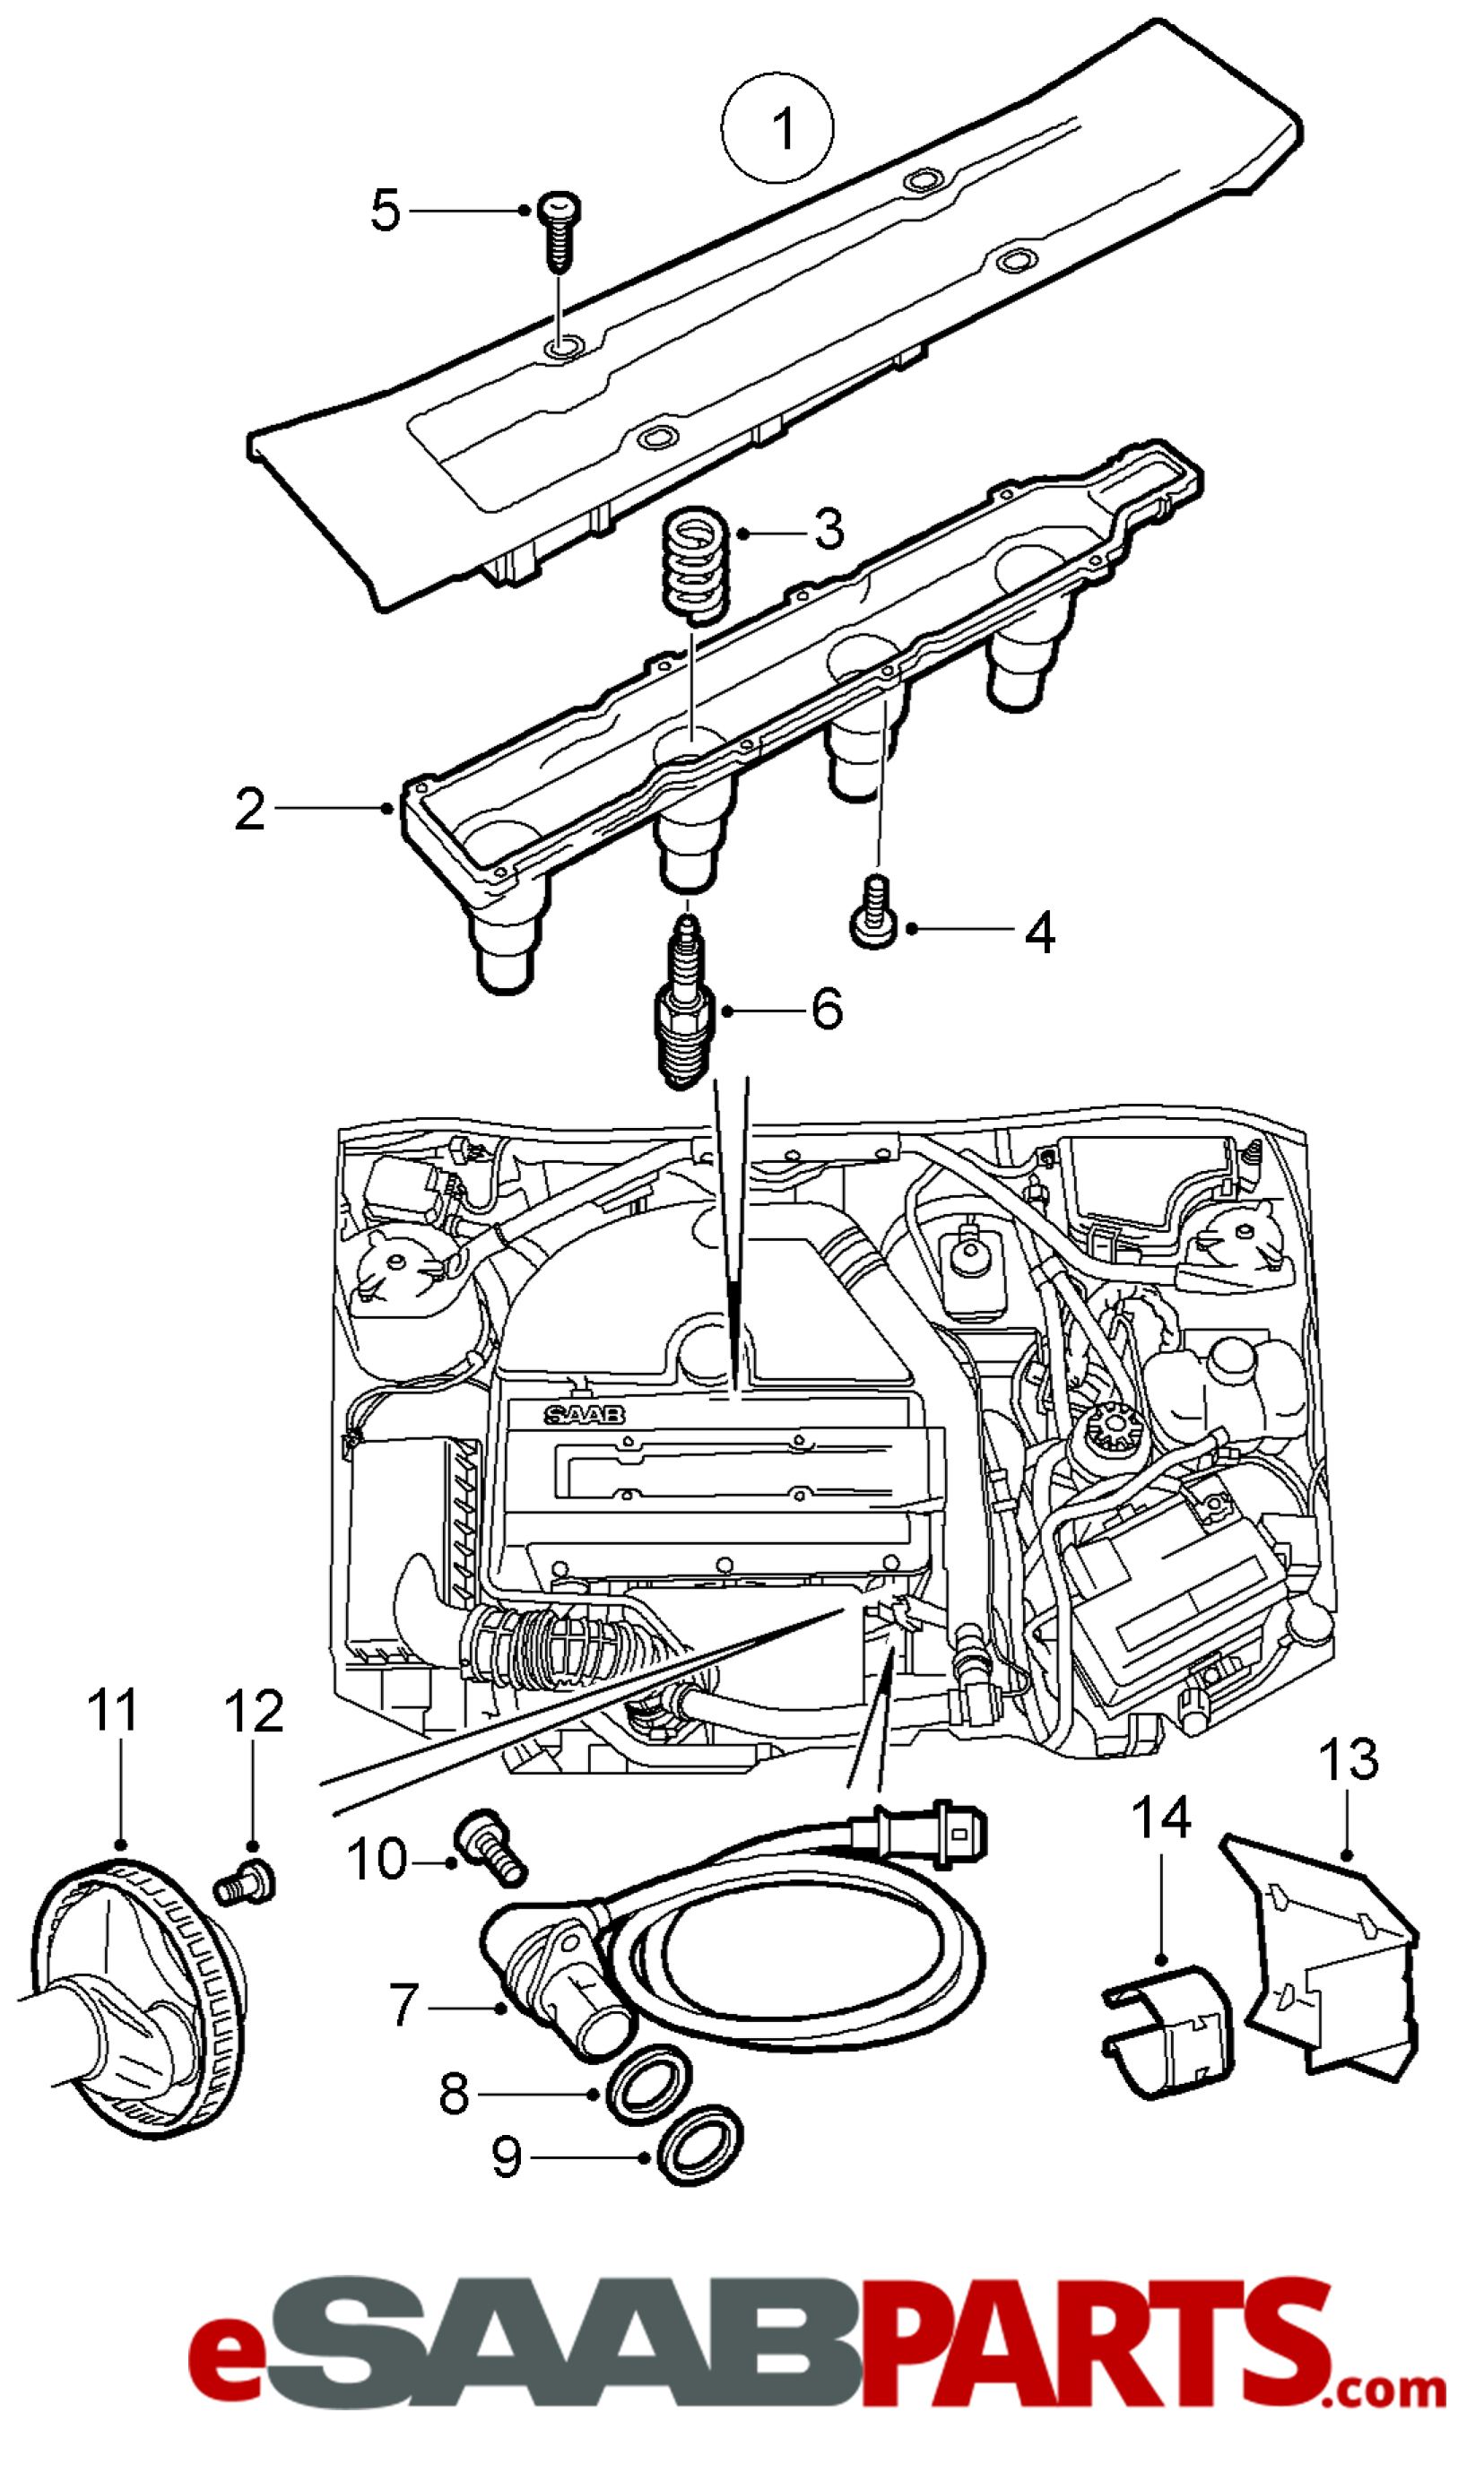 Saab Trionic 7 Wiring Diagram